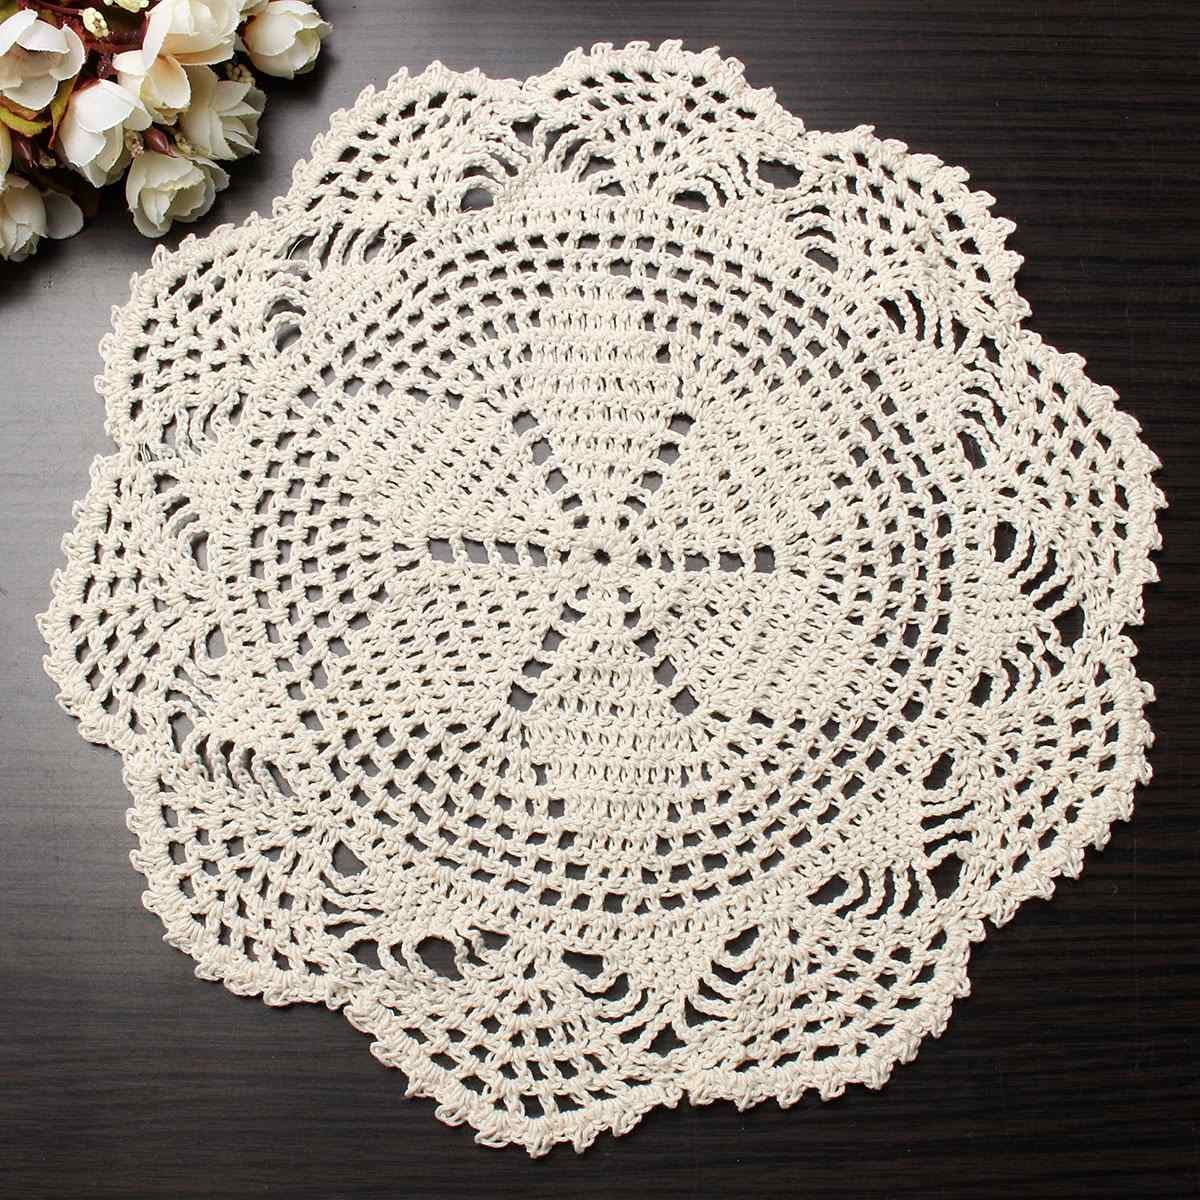 28cm vintage beige crochet lace doily cotton yarn handmade flower placemat round doilies for wedding home